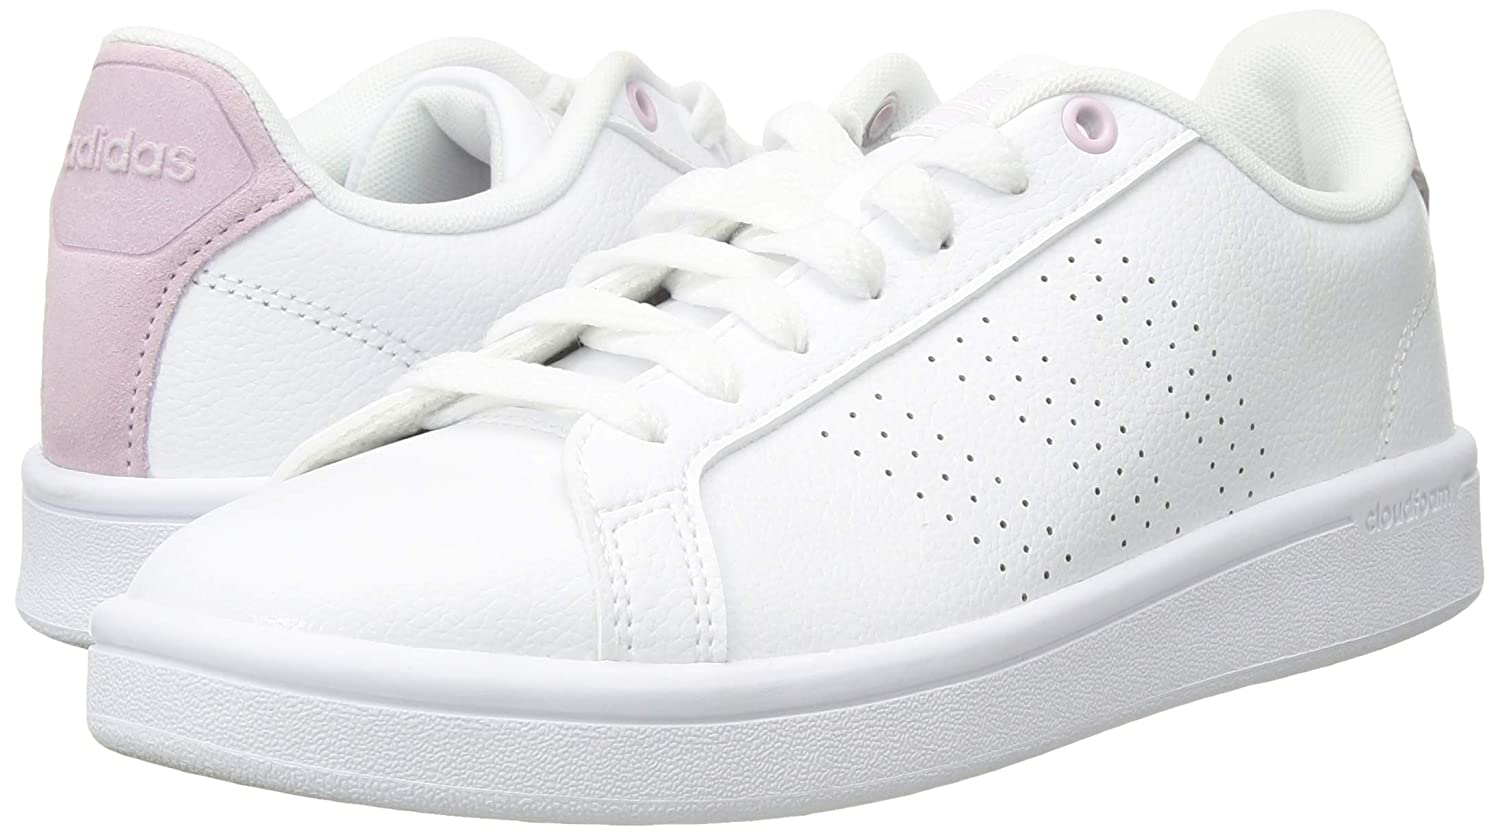 sports shoes 969f5 23142 adidas Women s Cloudfoam Advantage CL Shoes  Adidas  Amazon.ca  Shoes    Handbags